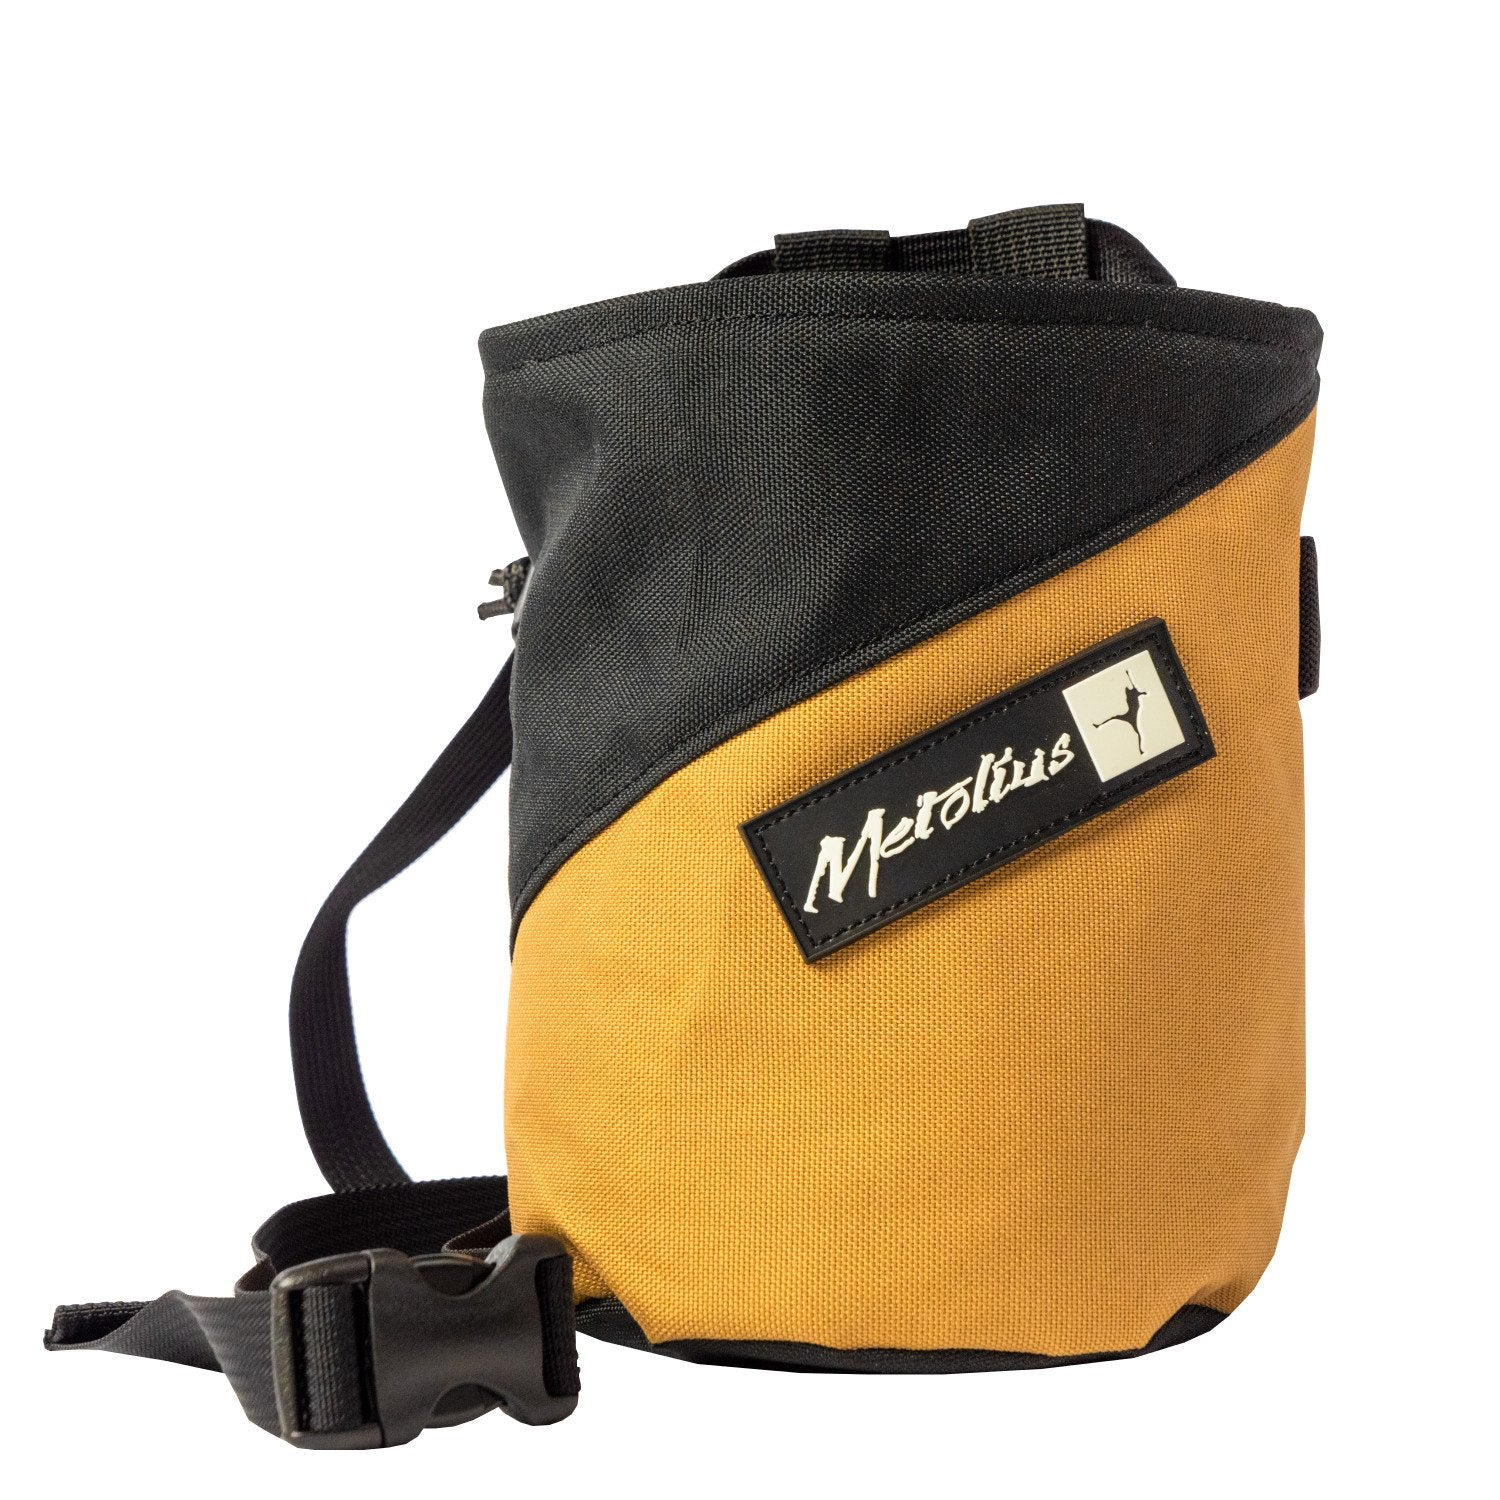 Metolius Comp Stripe Chalk bag with belt in Brown